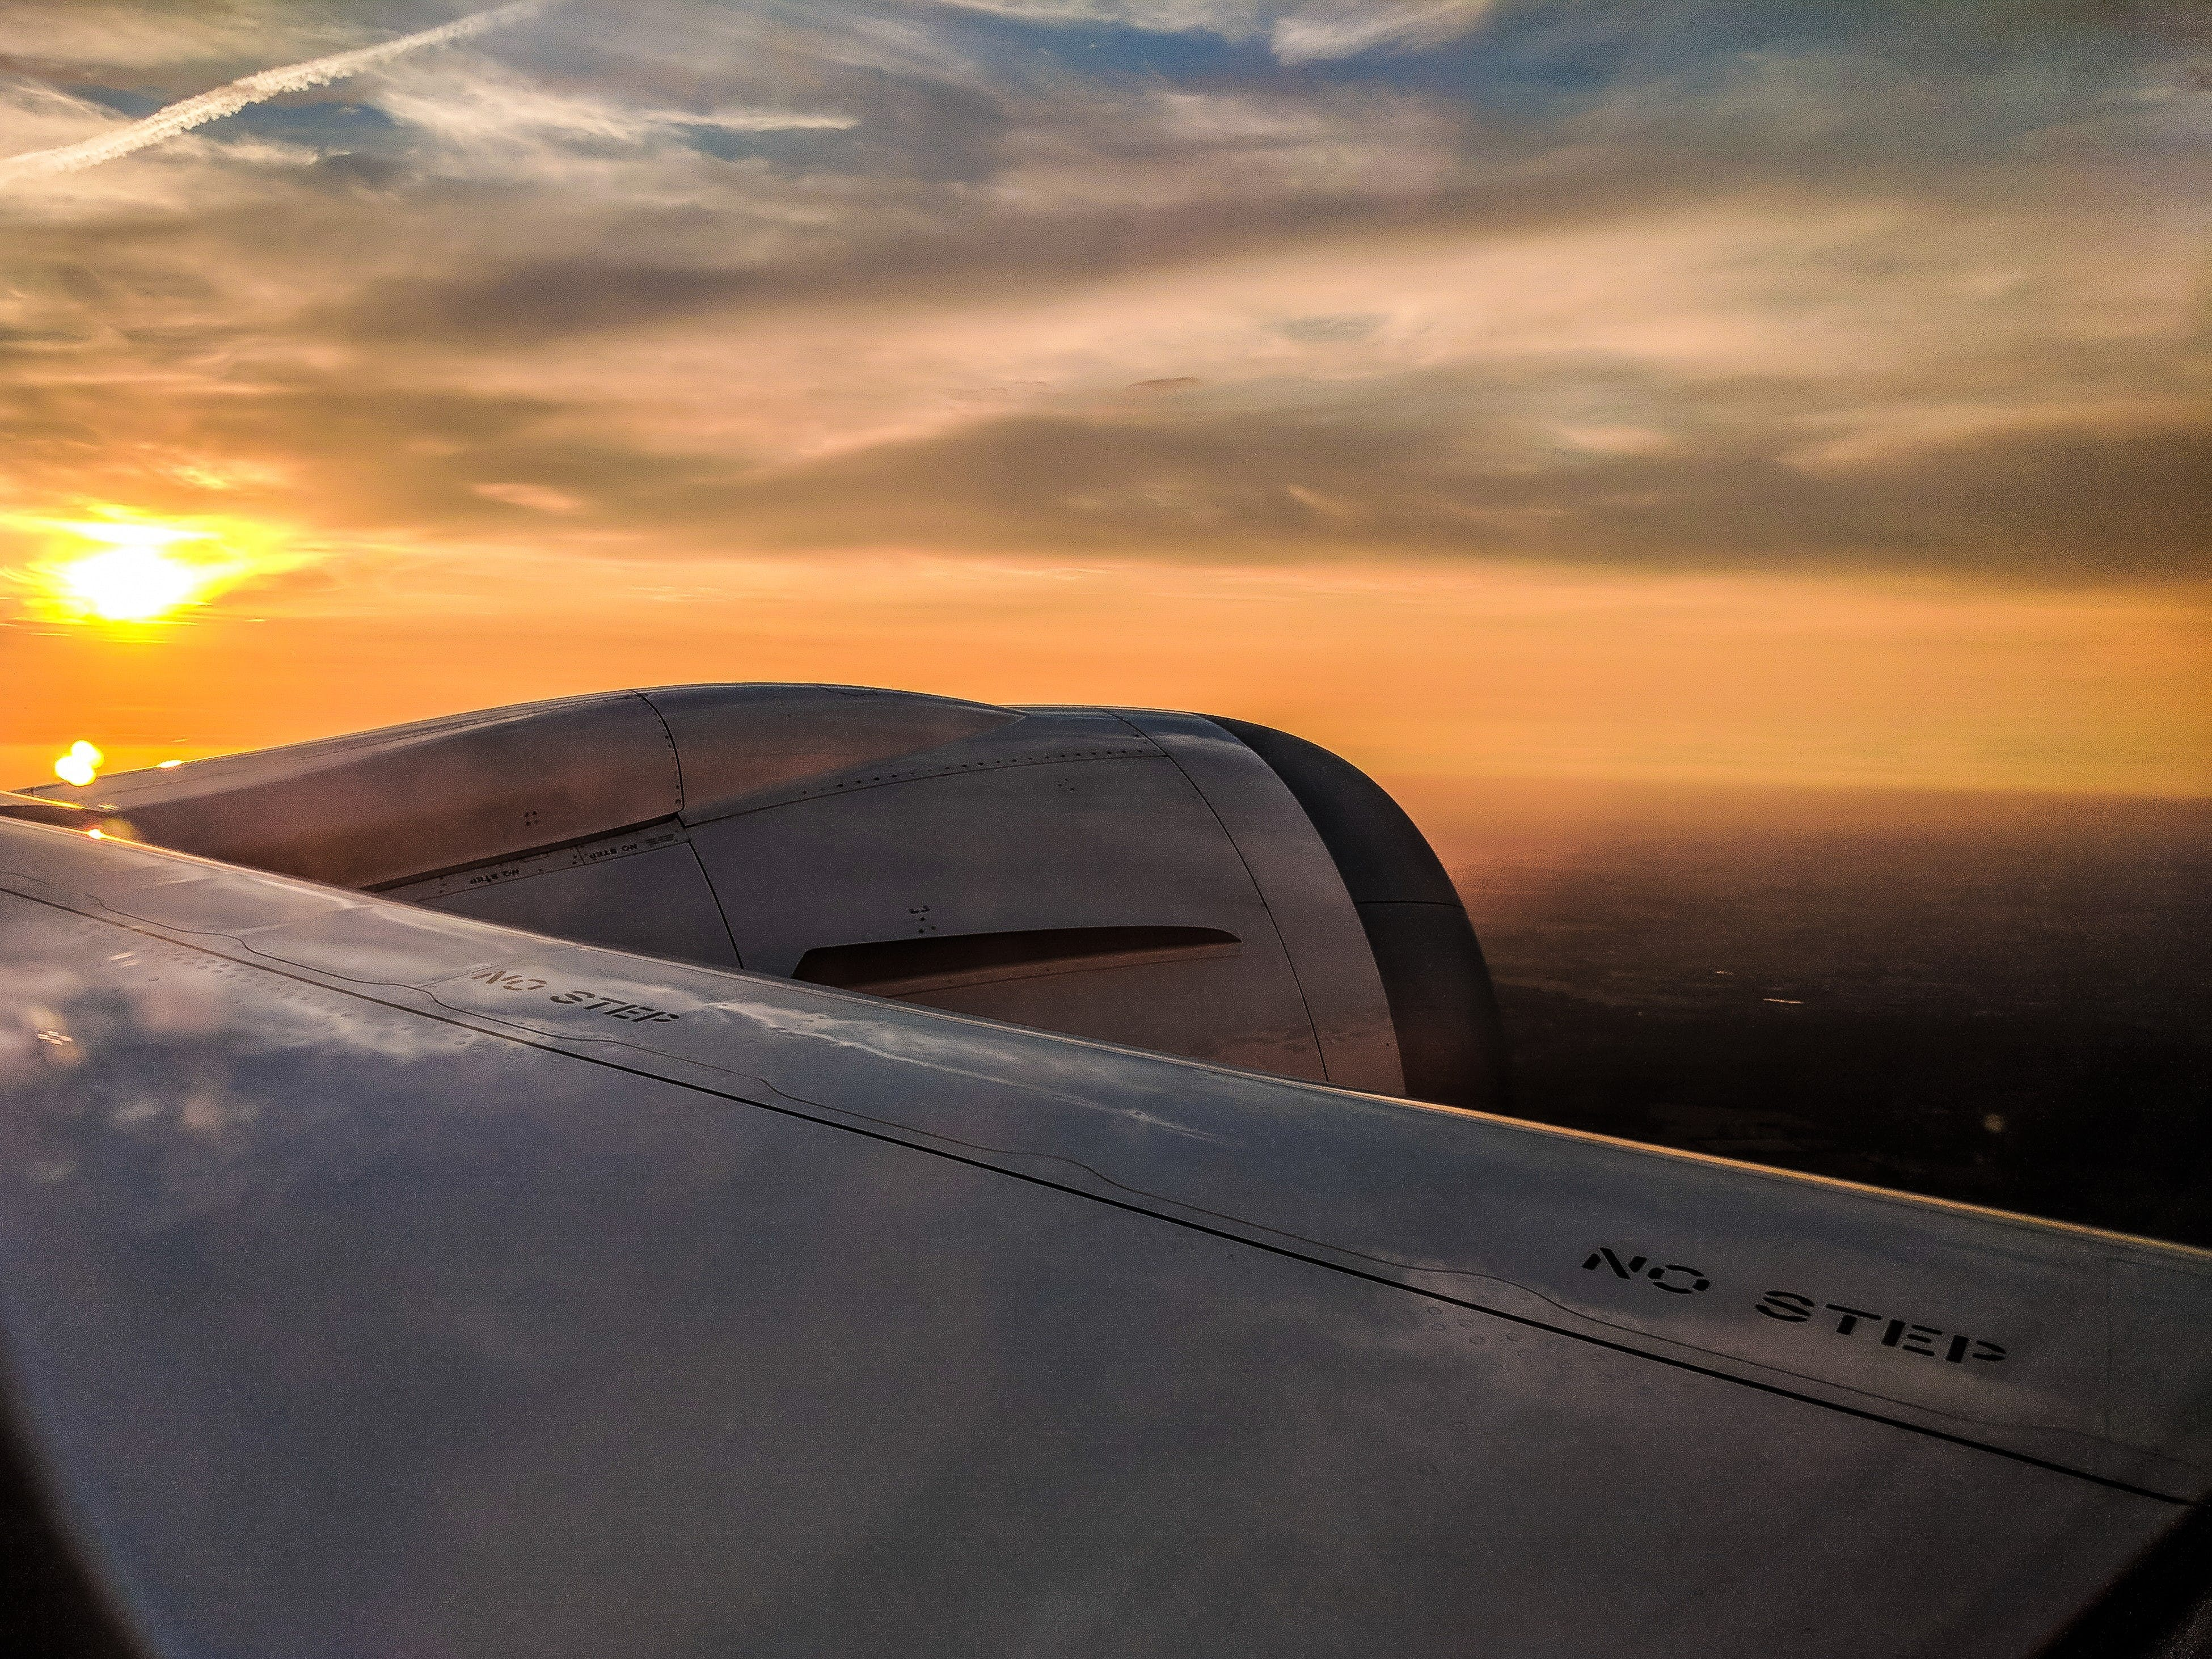 Free stock photo of aircraft wings, airplane, evening sky, golden sunset